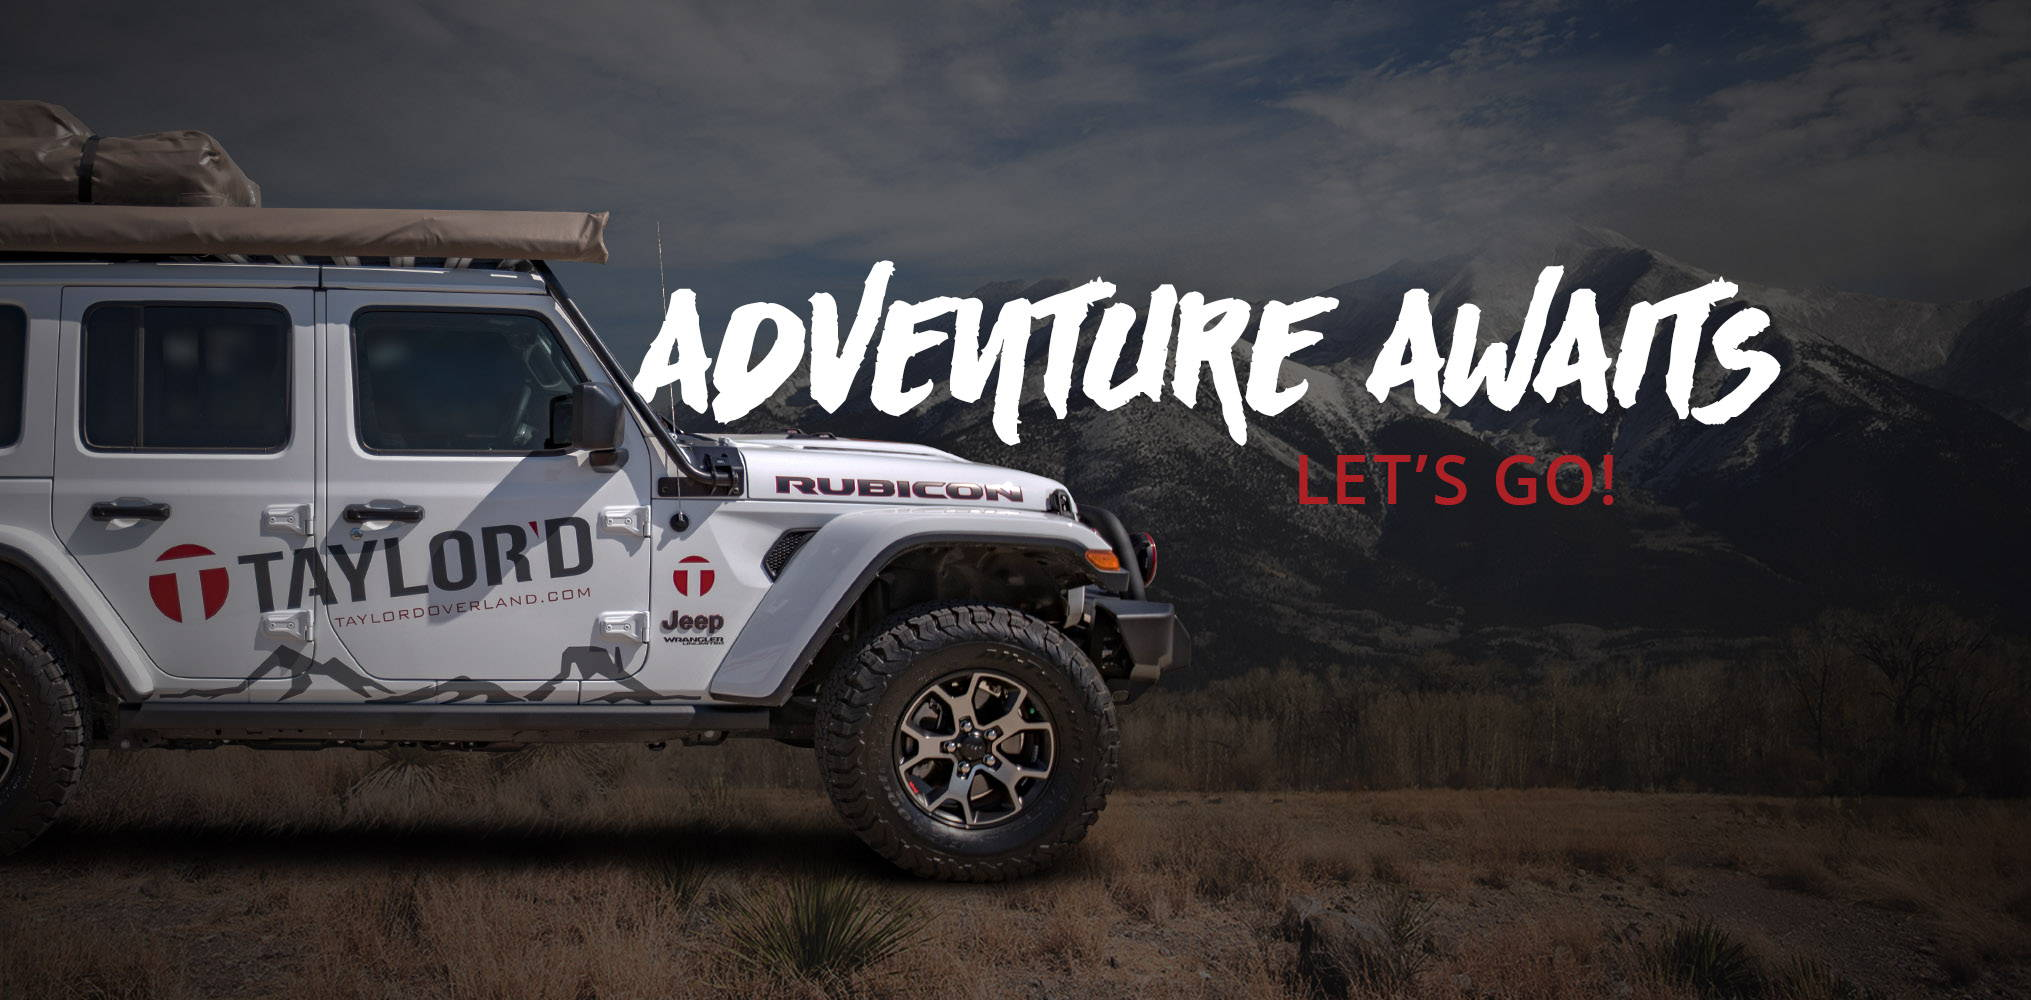 Taylor D Overland Vehicles Adventure Fort Worth Texas